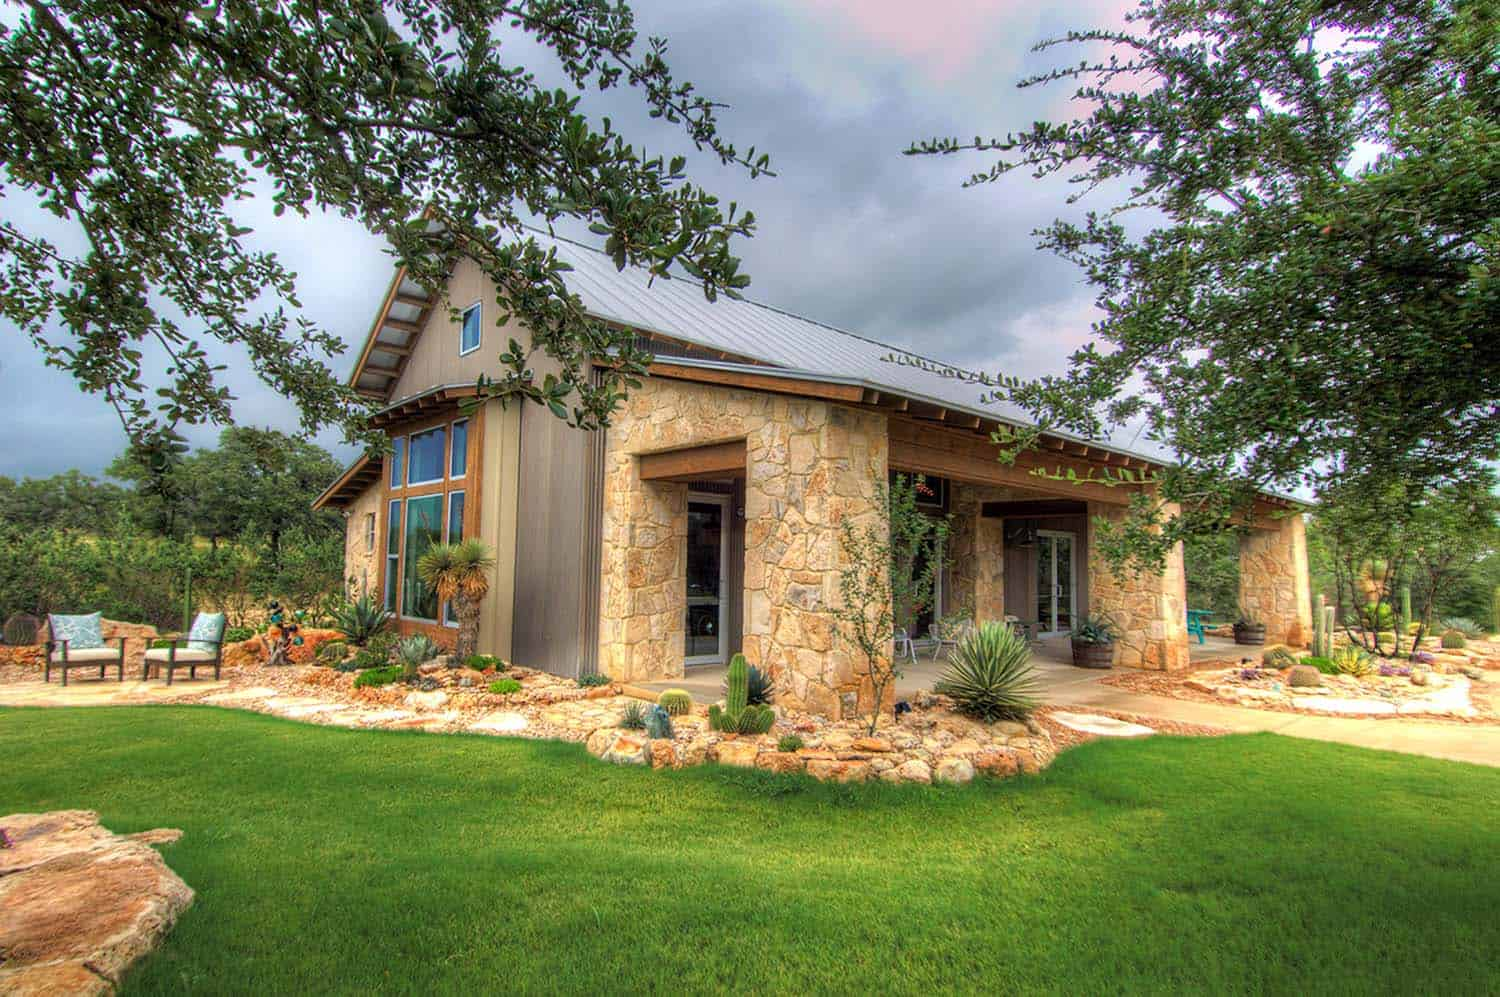 Ranch House-Barn-Burleson Design Group-19-1 Kindesign